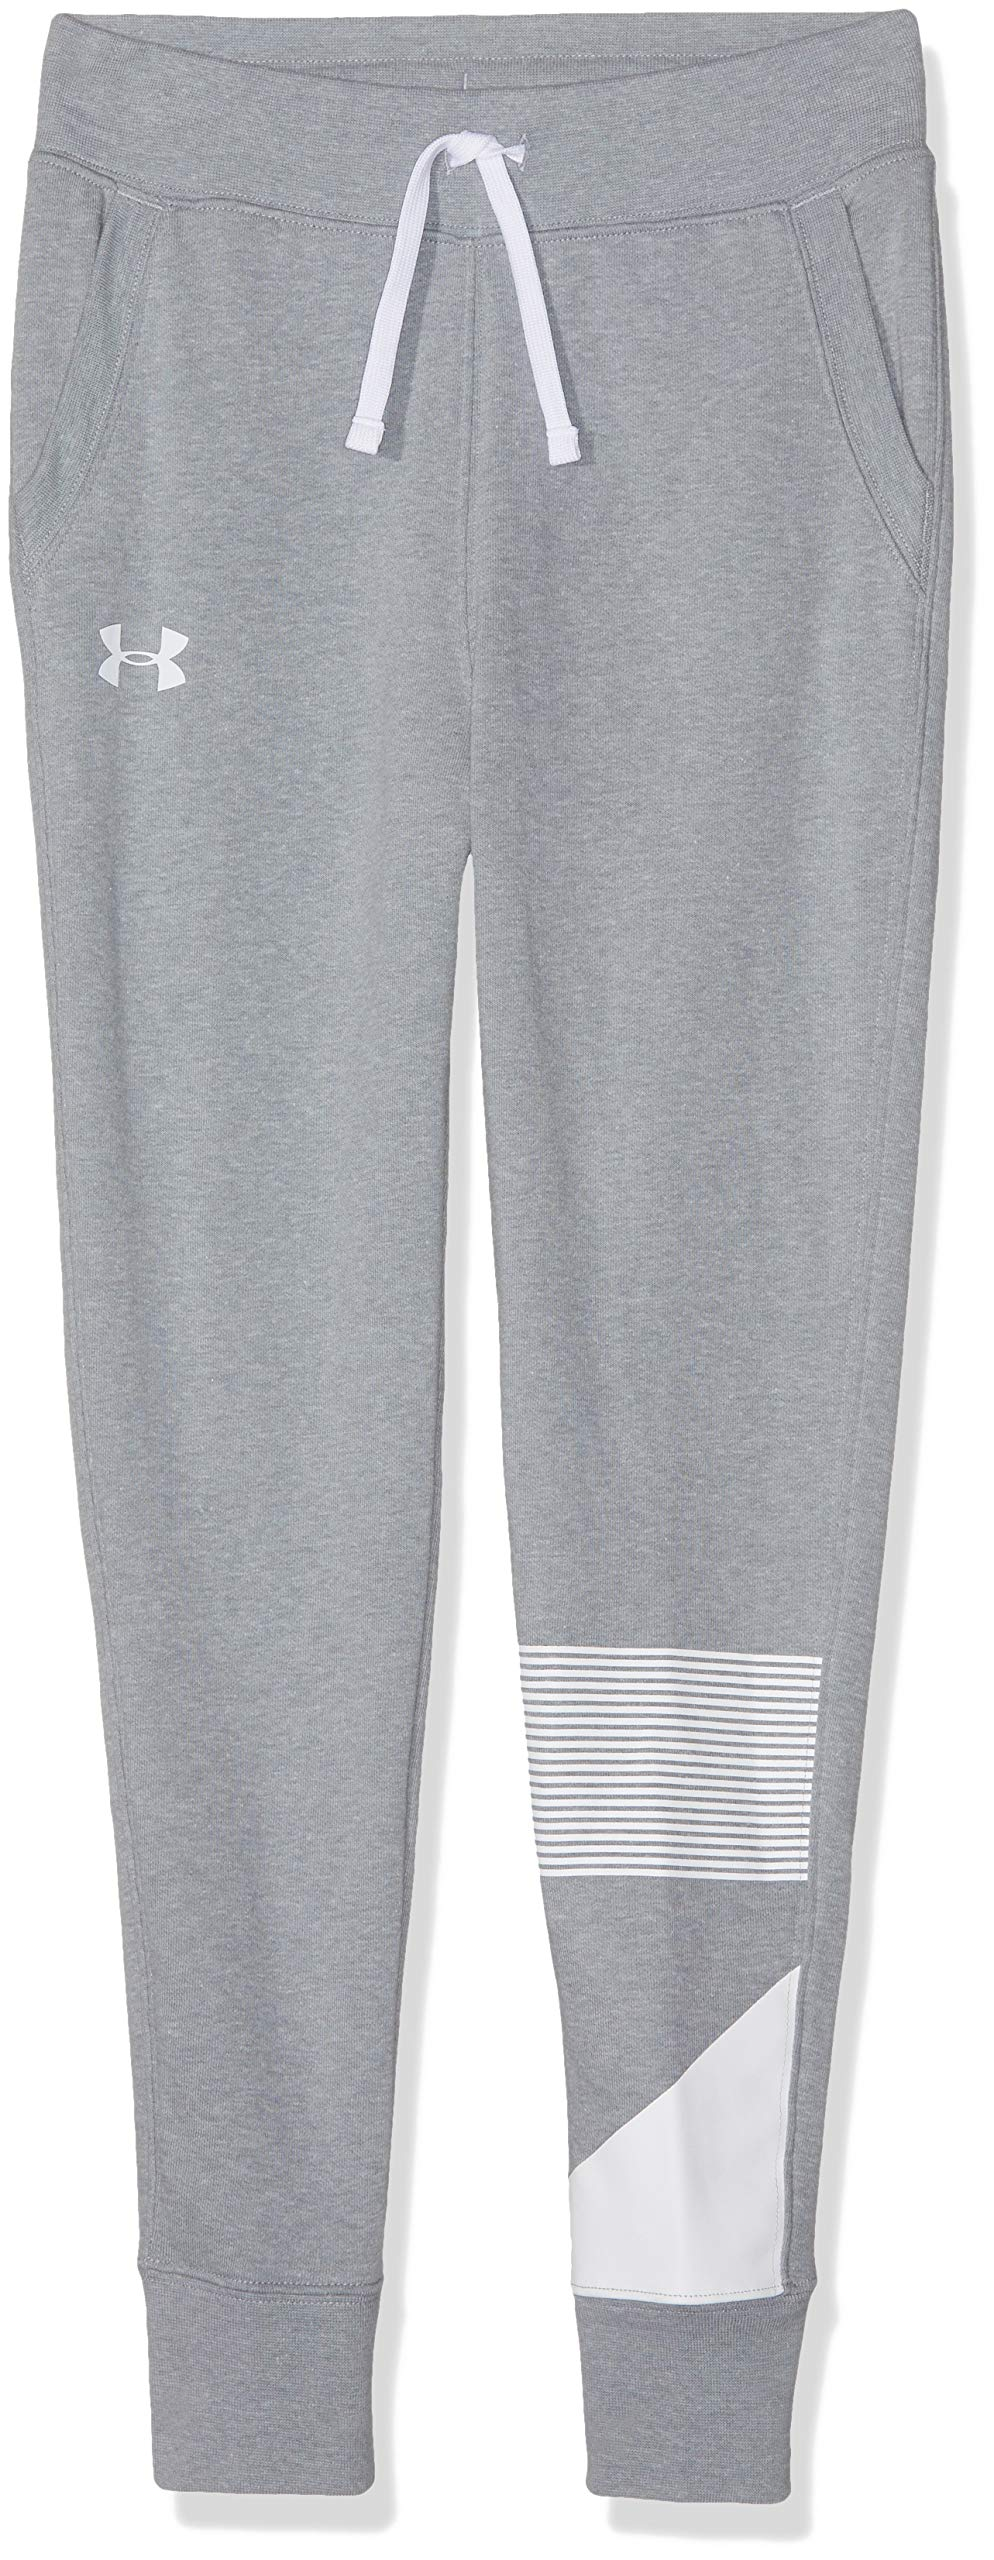 Under Armour Girls Rival Jogger, Steel Light Heather (035)/White, Youth Medium